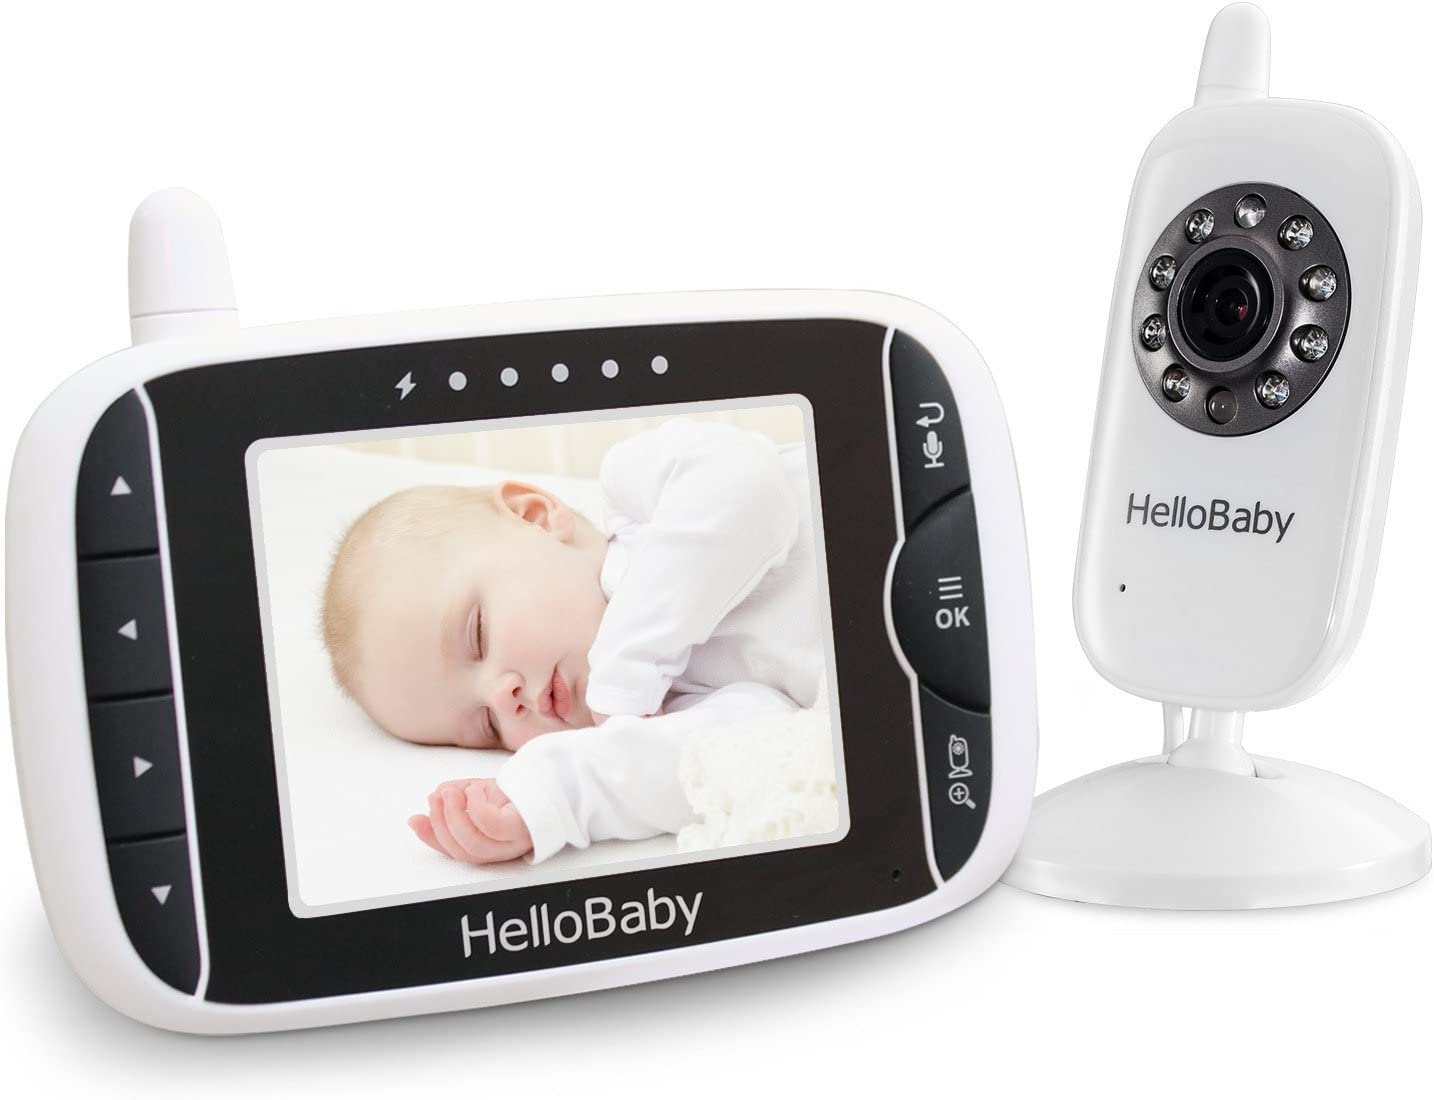 White Camera HelloBaby Video Baby Monitor HB32 with VOX Sound Activate Night Vision /& Temperature Sensor Two-Way Talkback System